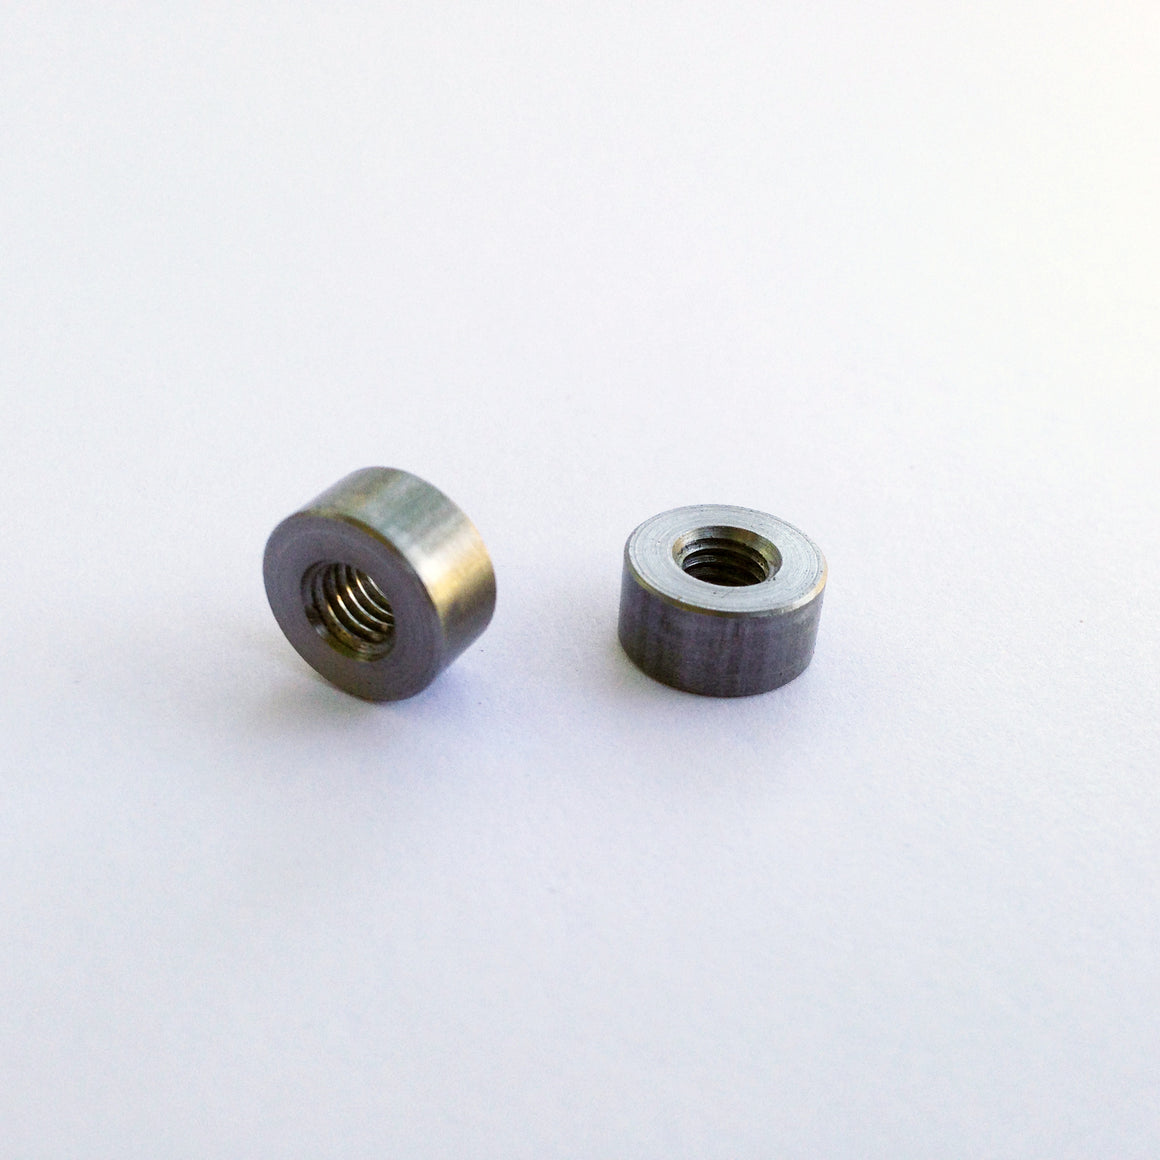 Eyelet bosses for M5 bolts